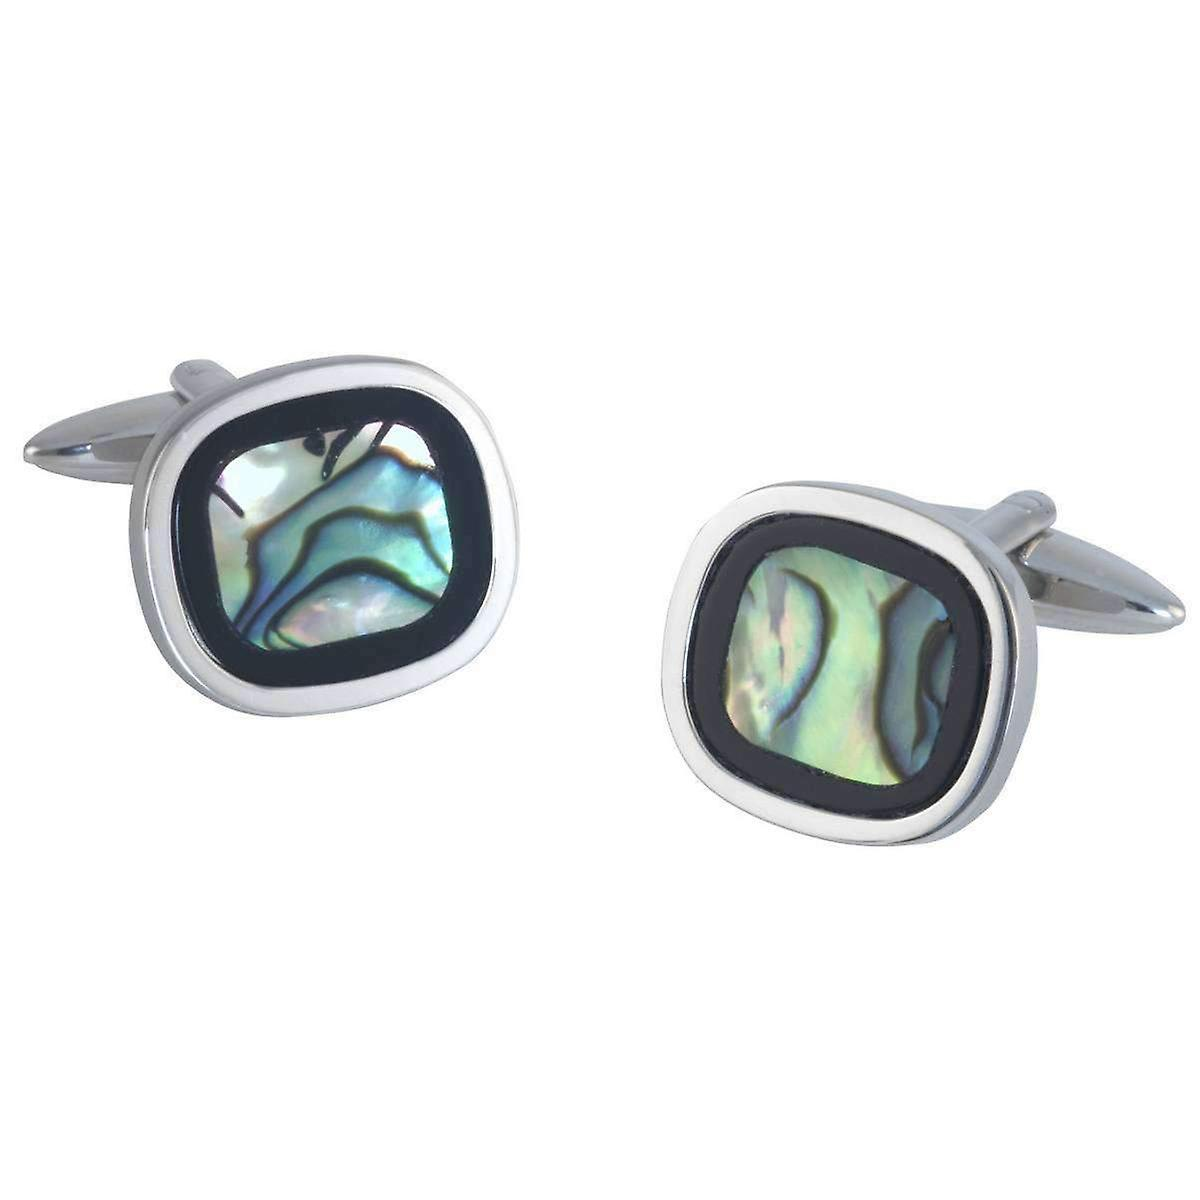 David Van Hagen Rounded Square Onyx and Abalone Cufflinks - Silver/Green